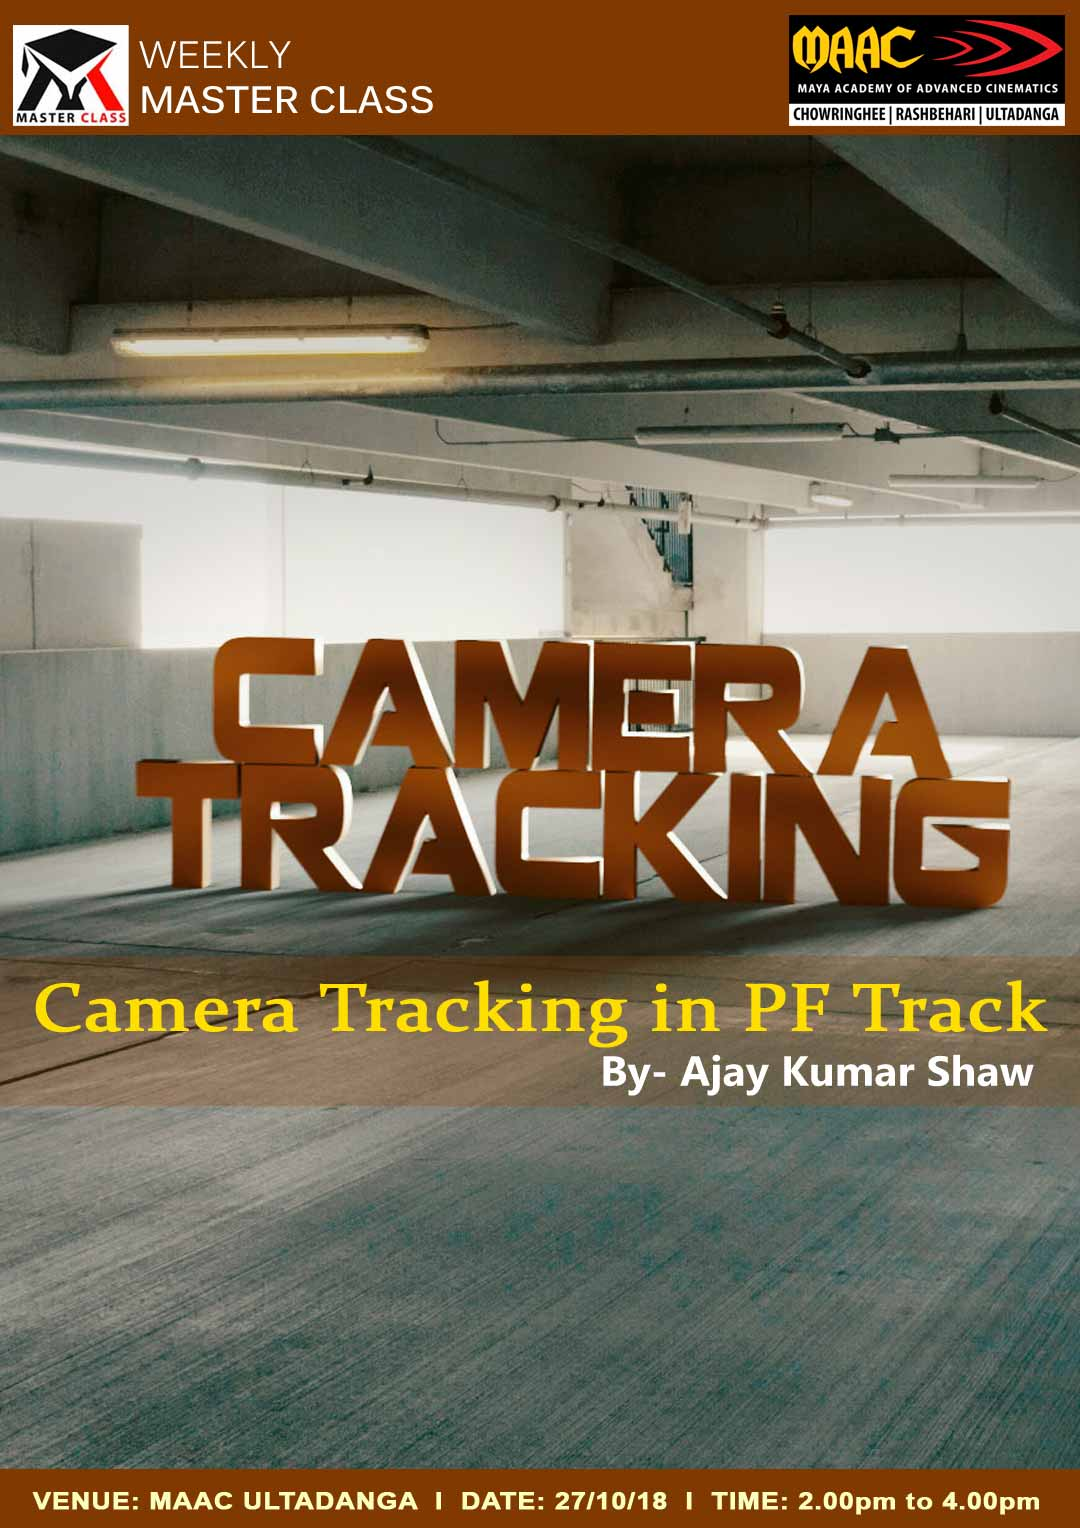 Weekly Master Class on Camera Tracking in PF Track